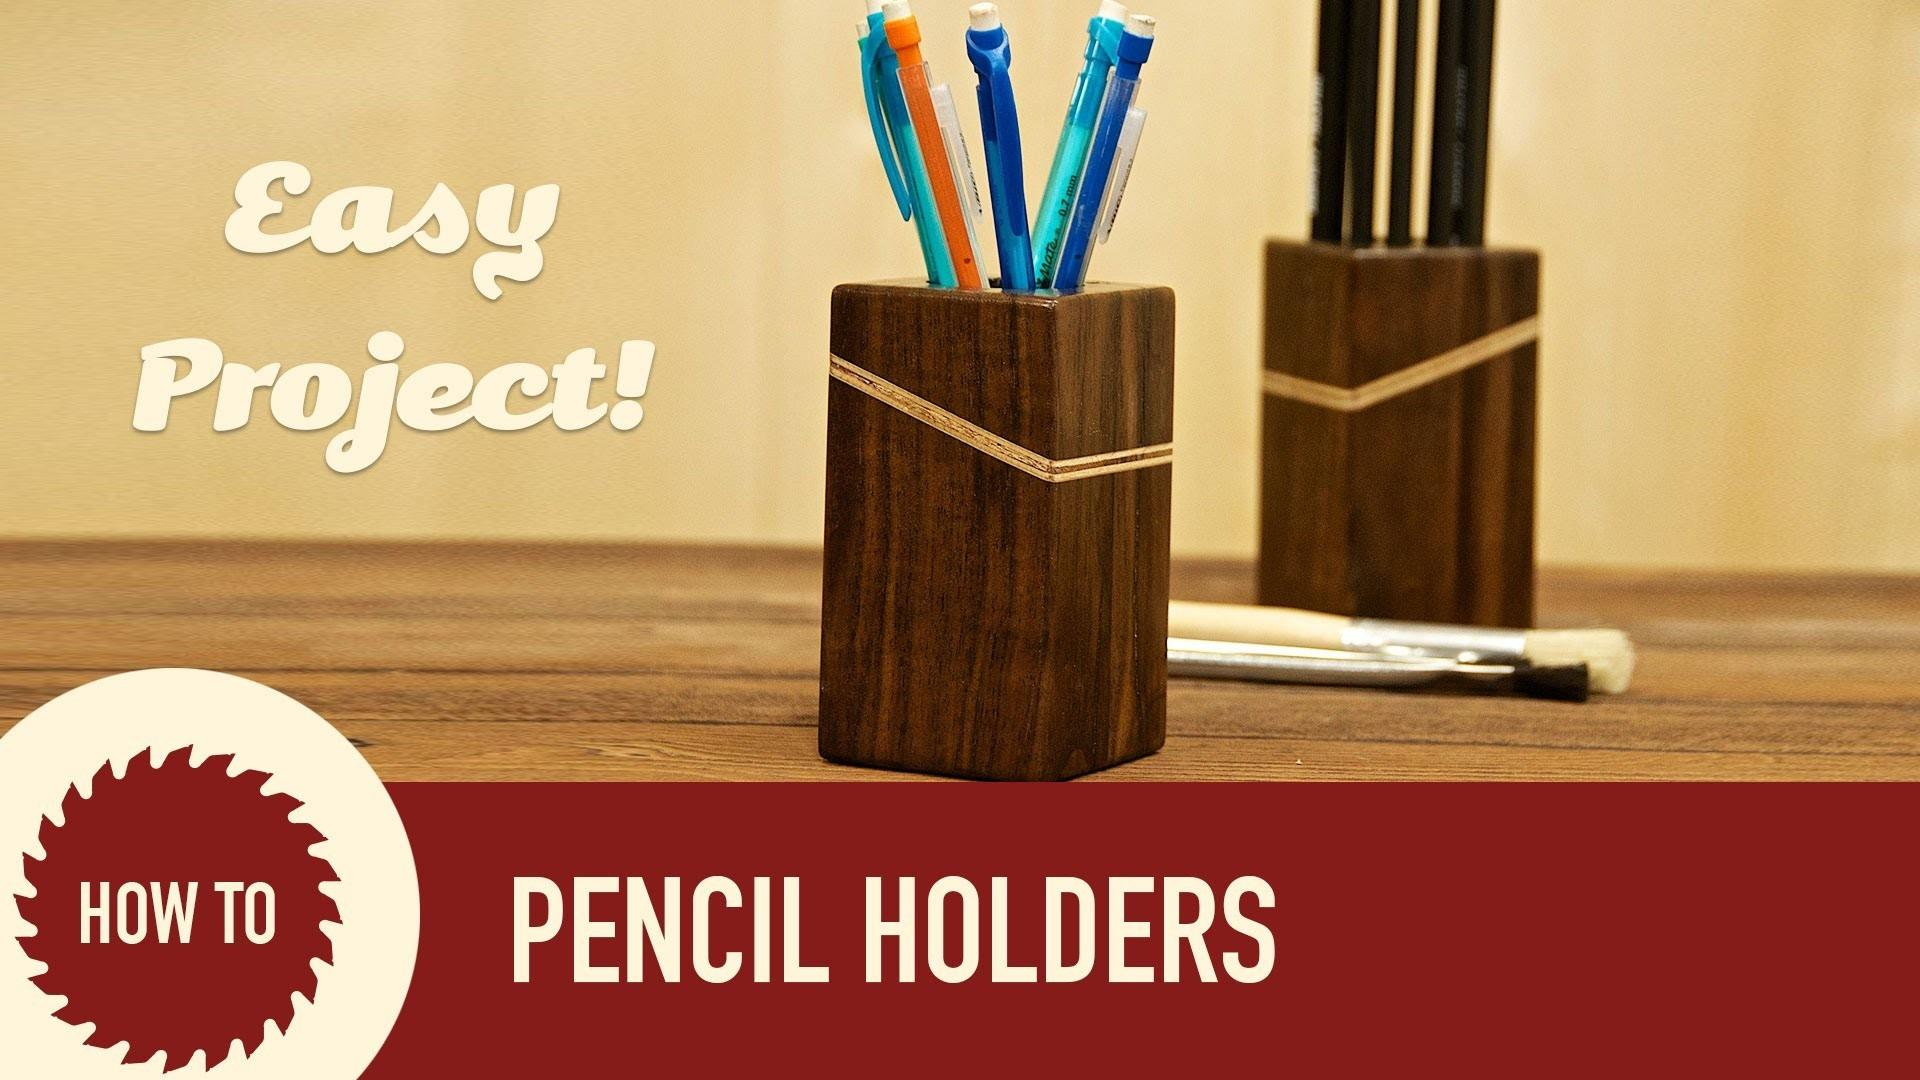 Make Wood Pencil Holders Crafts Diy Projects